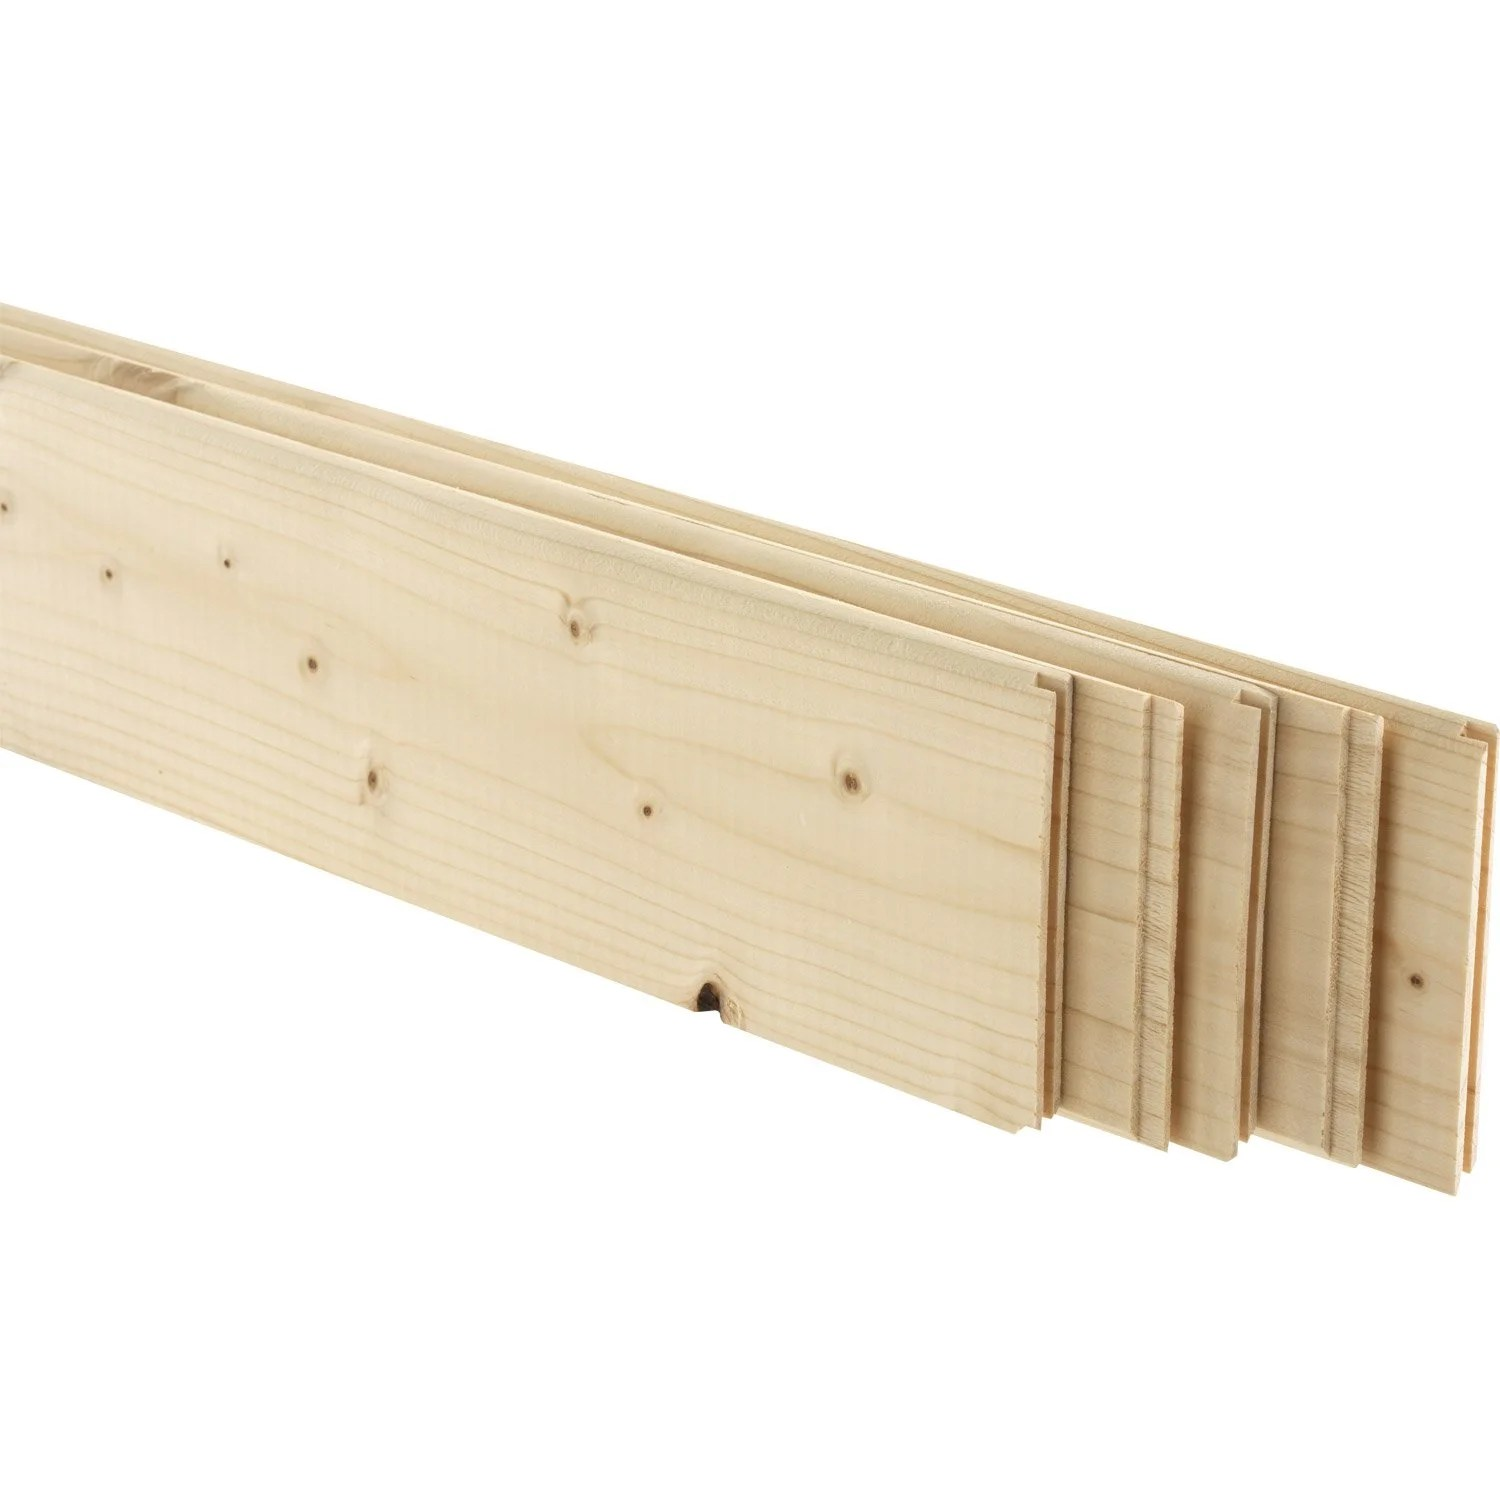 Plinthe En Bois Leroy Merlin Lot De 5 Plinthes Sapin Petits Noeuds Arrondies 8 5 X 105